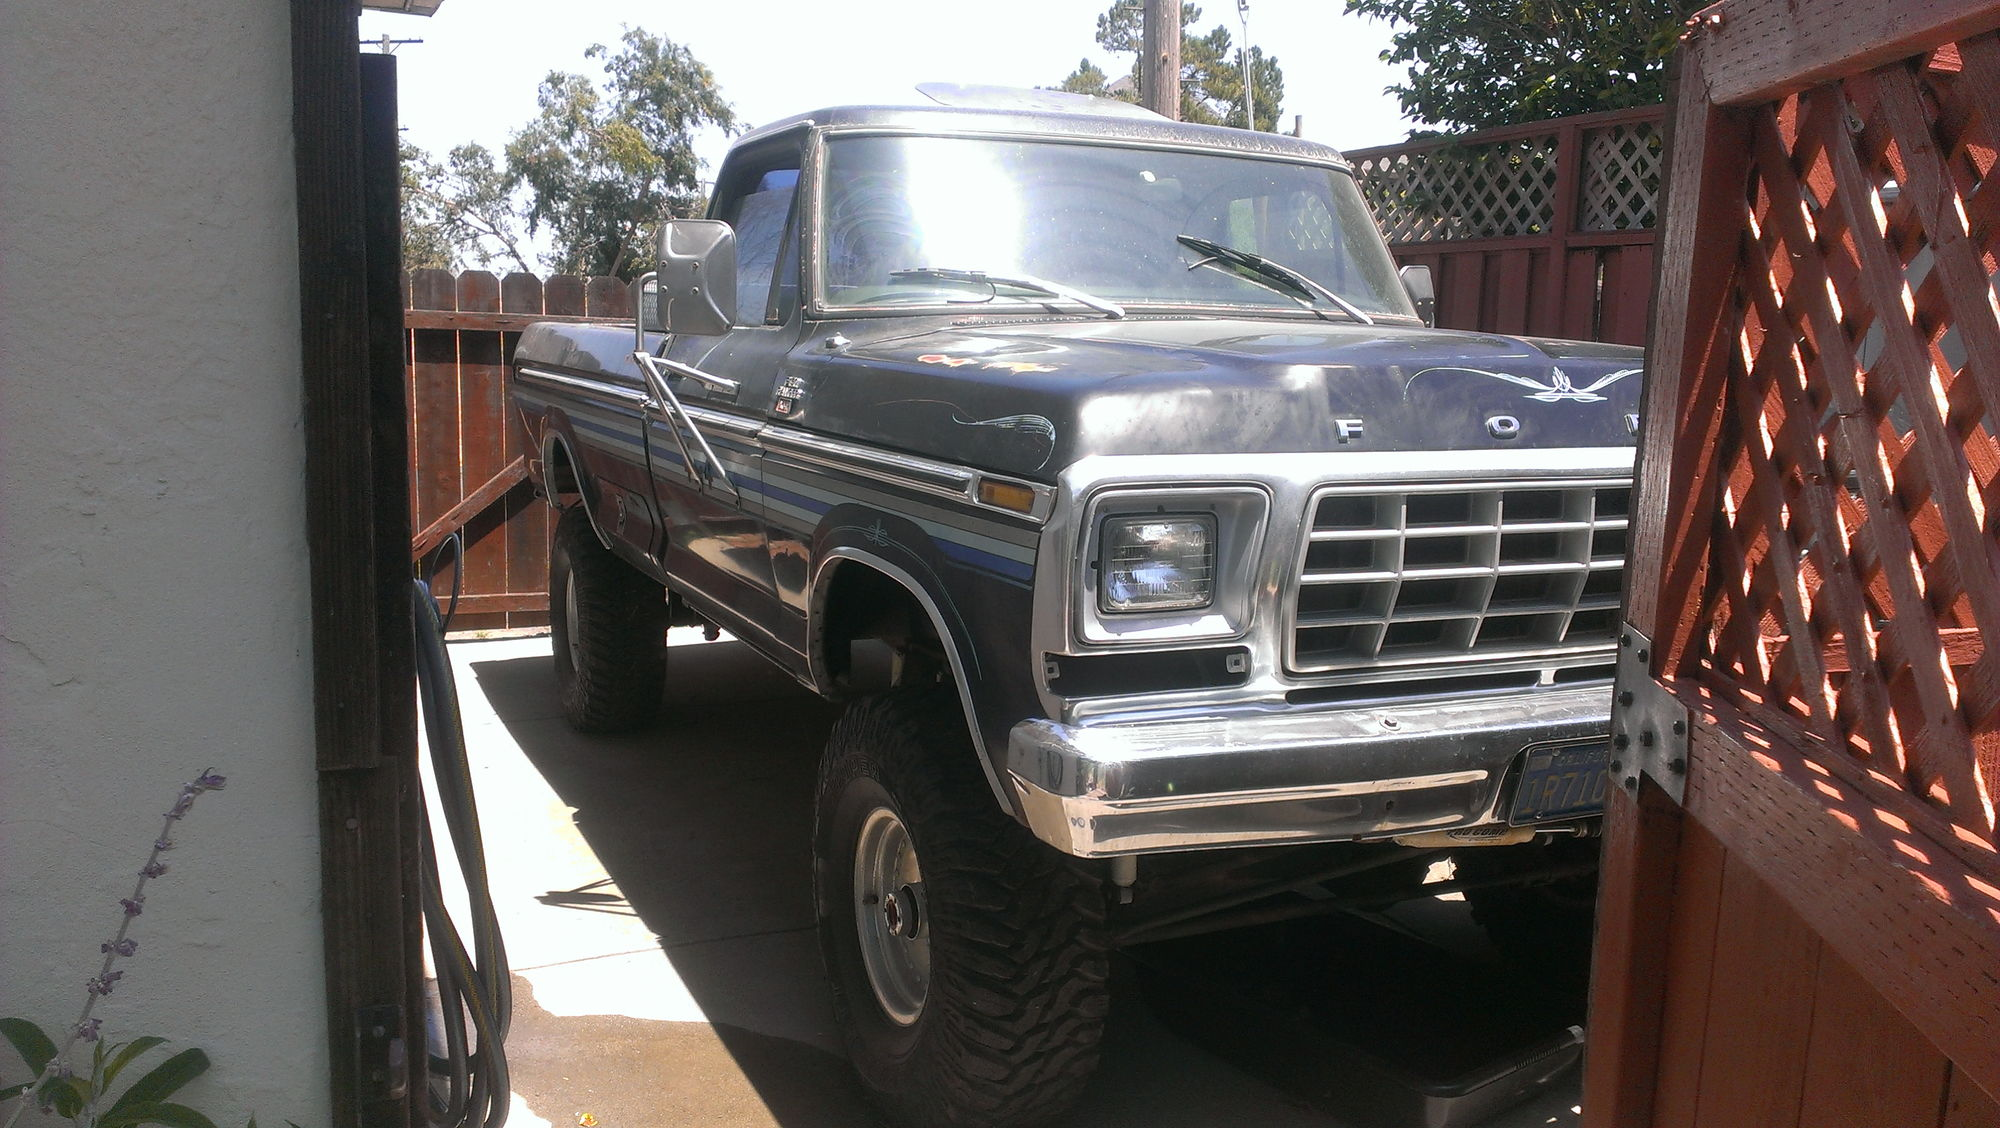 4 9 efi build 1979 f150 4x4 ford truck enthusiasts forums. Black Bedroom Furniture Sets. Home Design Ideas